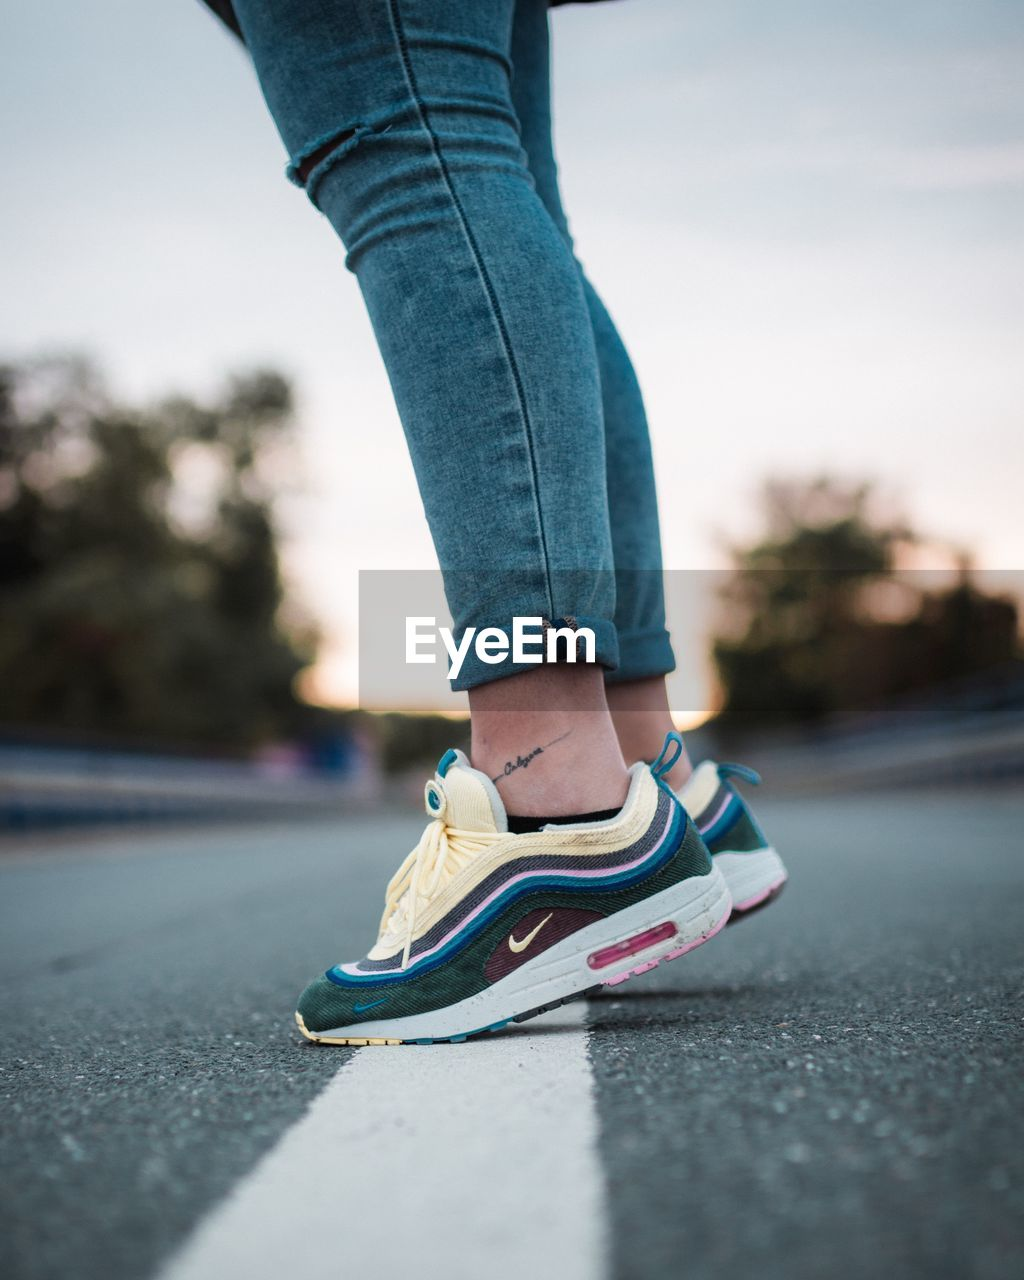 shoe, one person, low section, human leg, jeans, lifestyles, city, human body part, body part, road, casual clothing, real people, street, transportation, day, women, leisure activity, focus on foreground, skateboard, outdoors, human foot, human limb